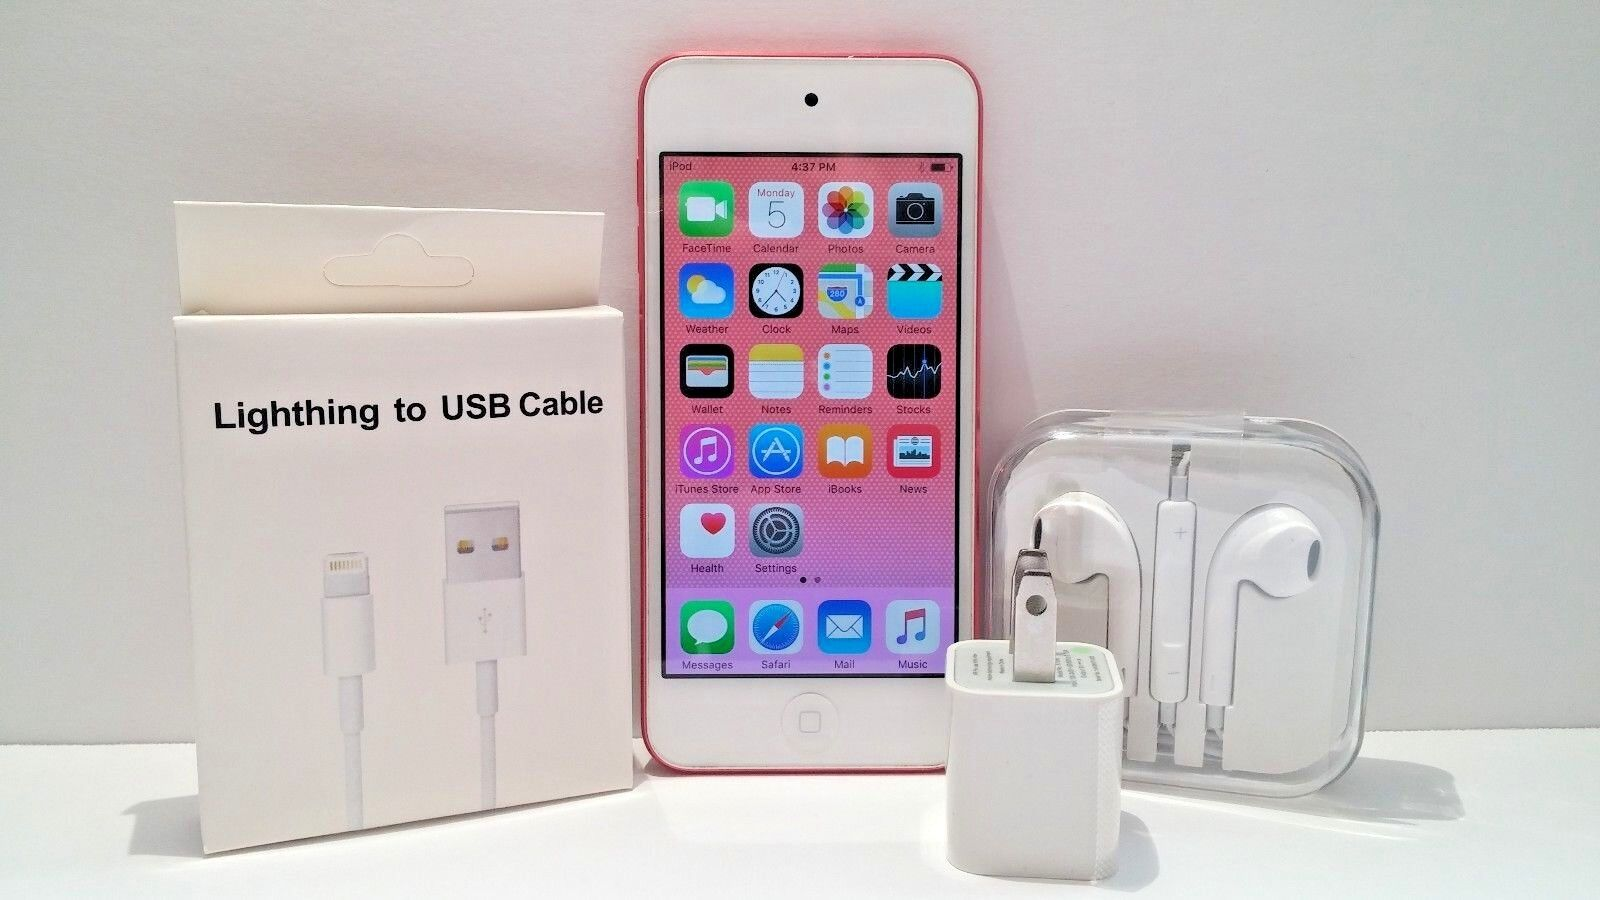 A1421 Apple iPod Touch 5th Generation 32GB Pink MP3 MP4 Dual Cameras Warranty